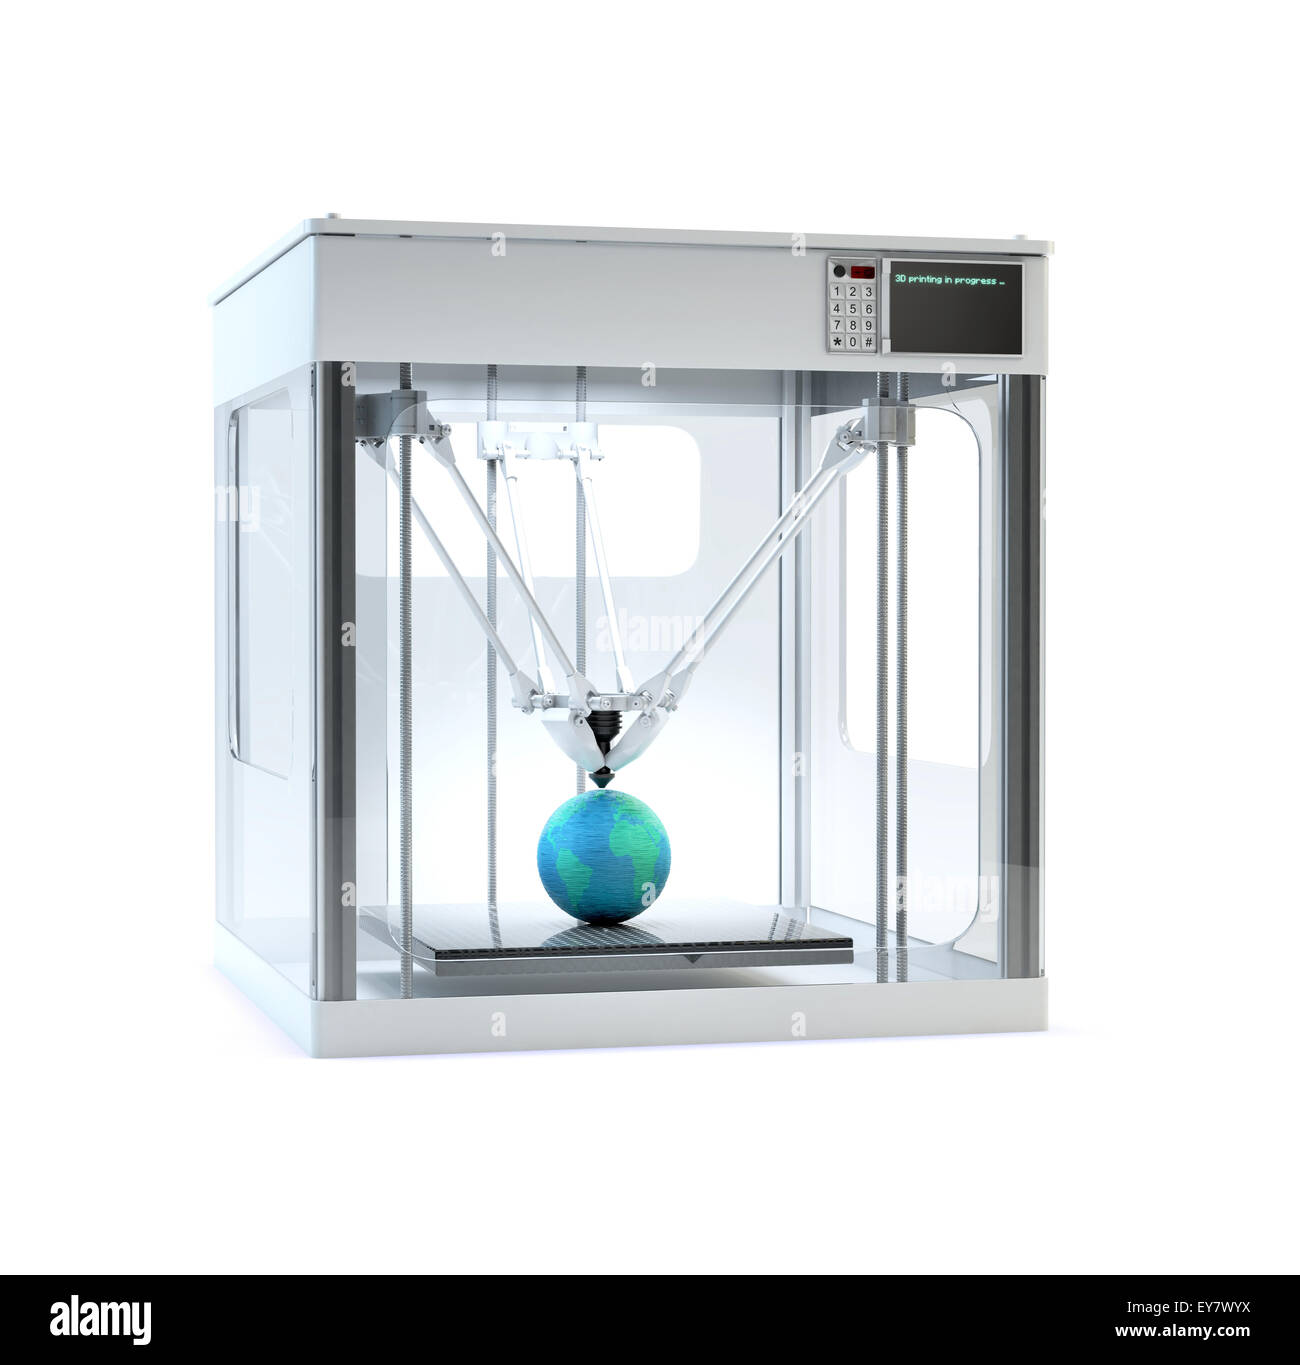 3D printer machine printing a globe - rapid prototyping - Stock Image